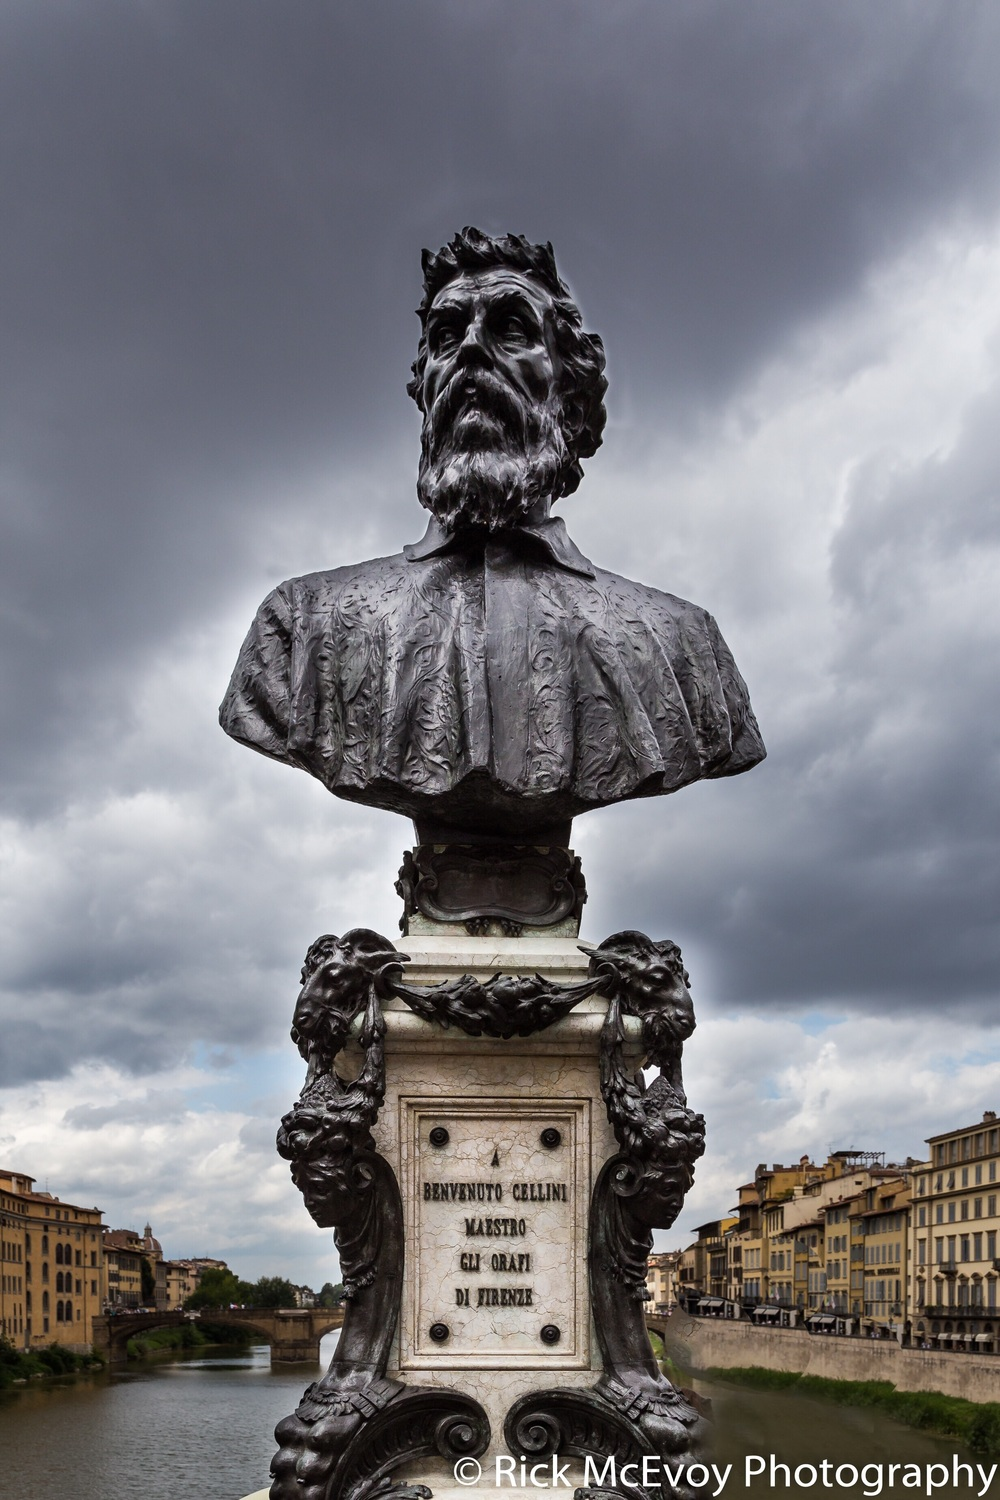 Photograph of the Statue of Benvenuto Cellini which can be found on the World Famous Ponte Vecchio, Florence, Italy